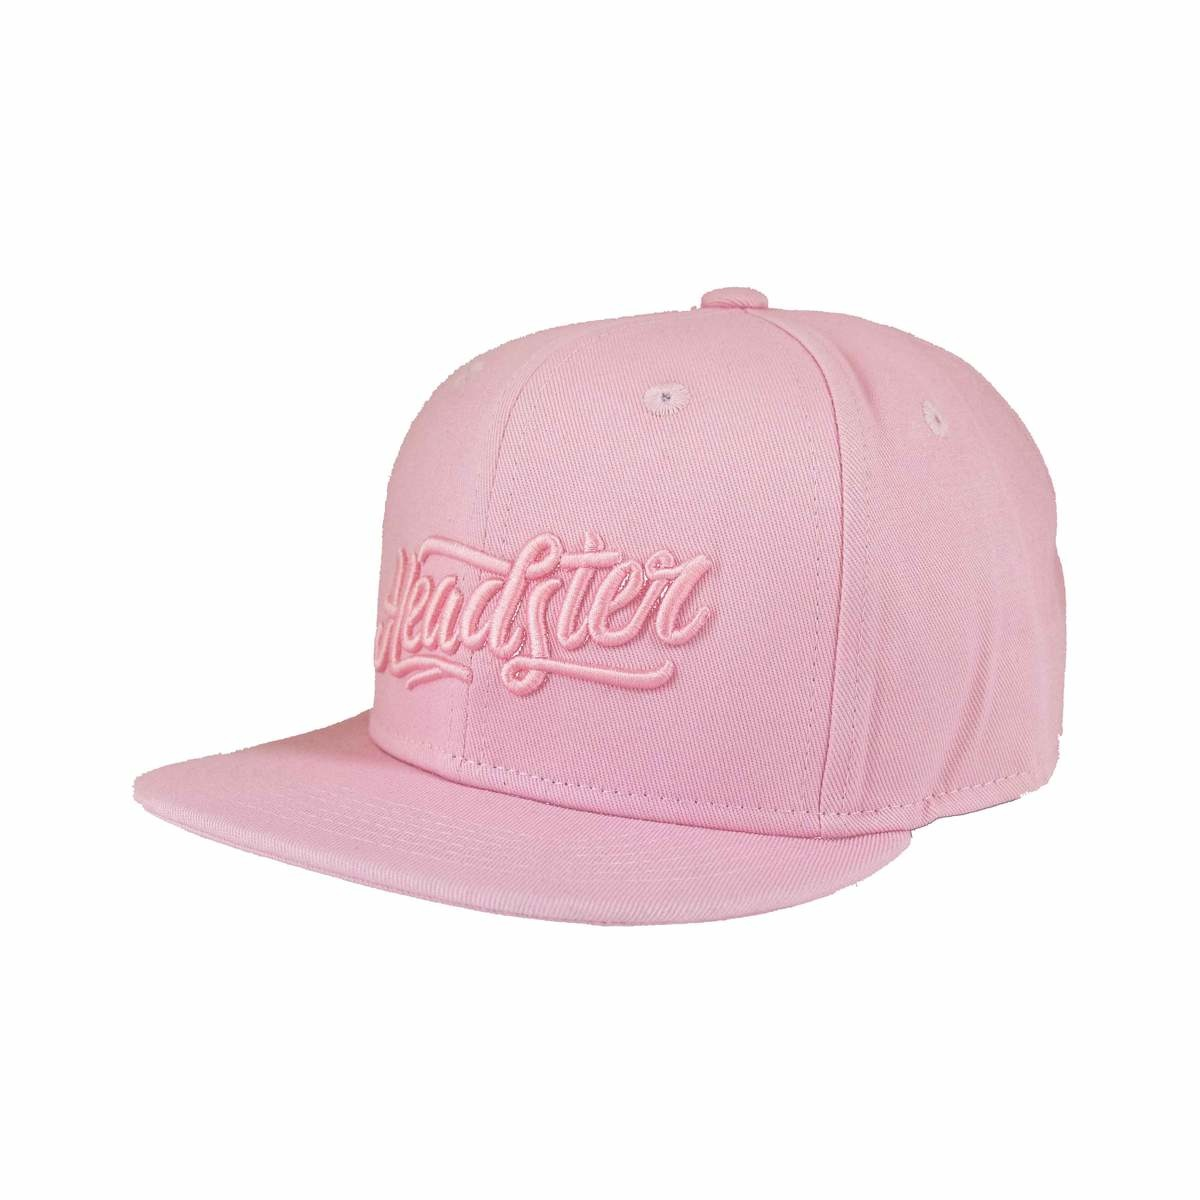 Headster Headster Everyday Cap